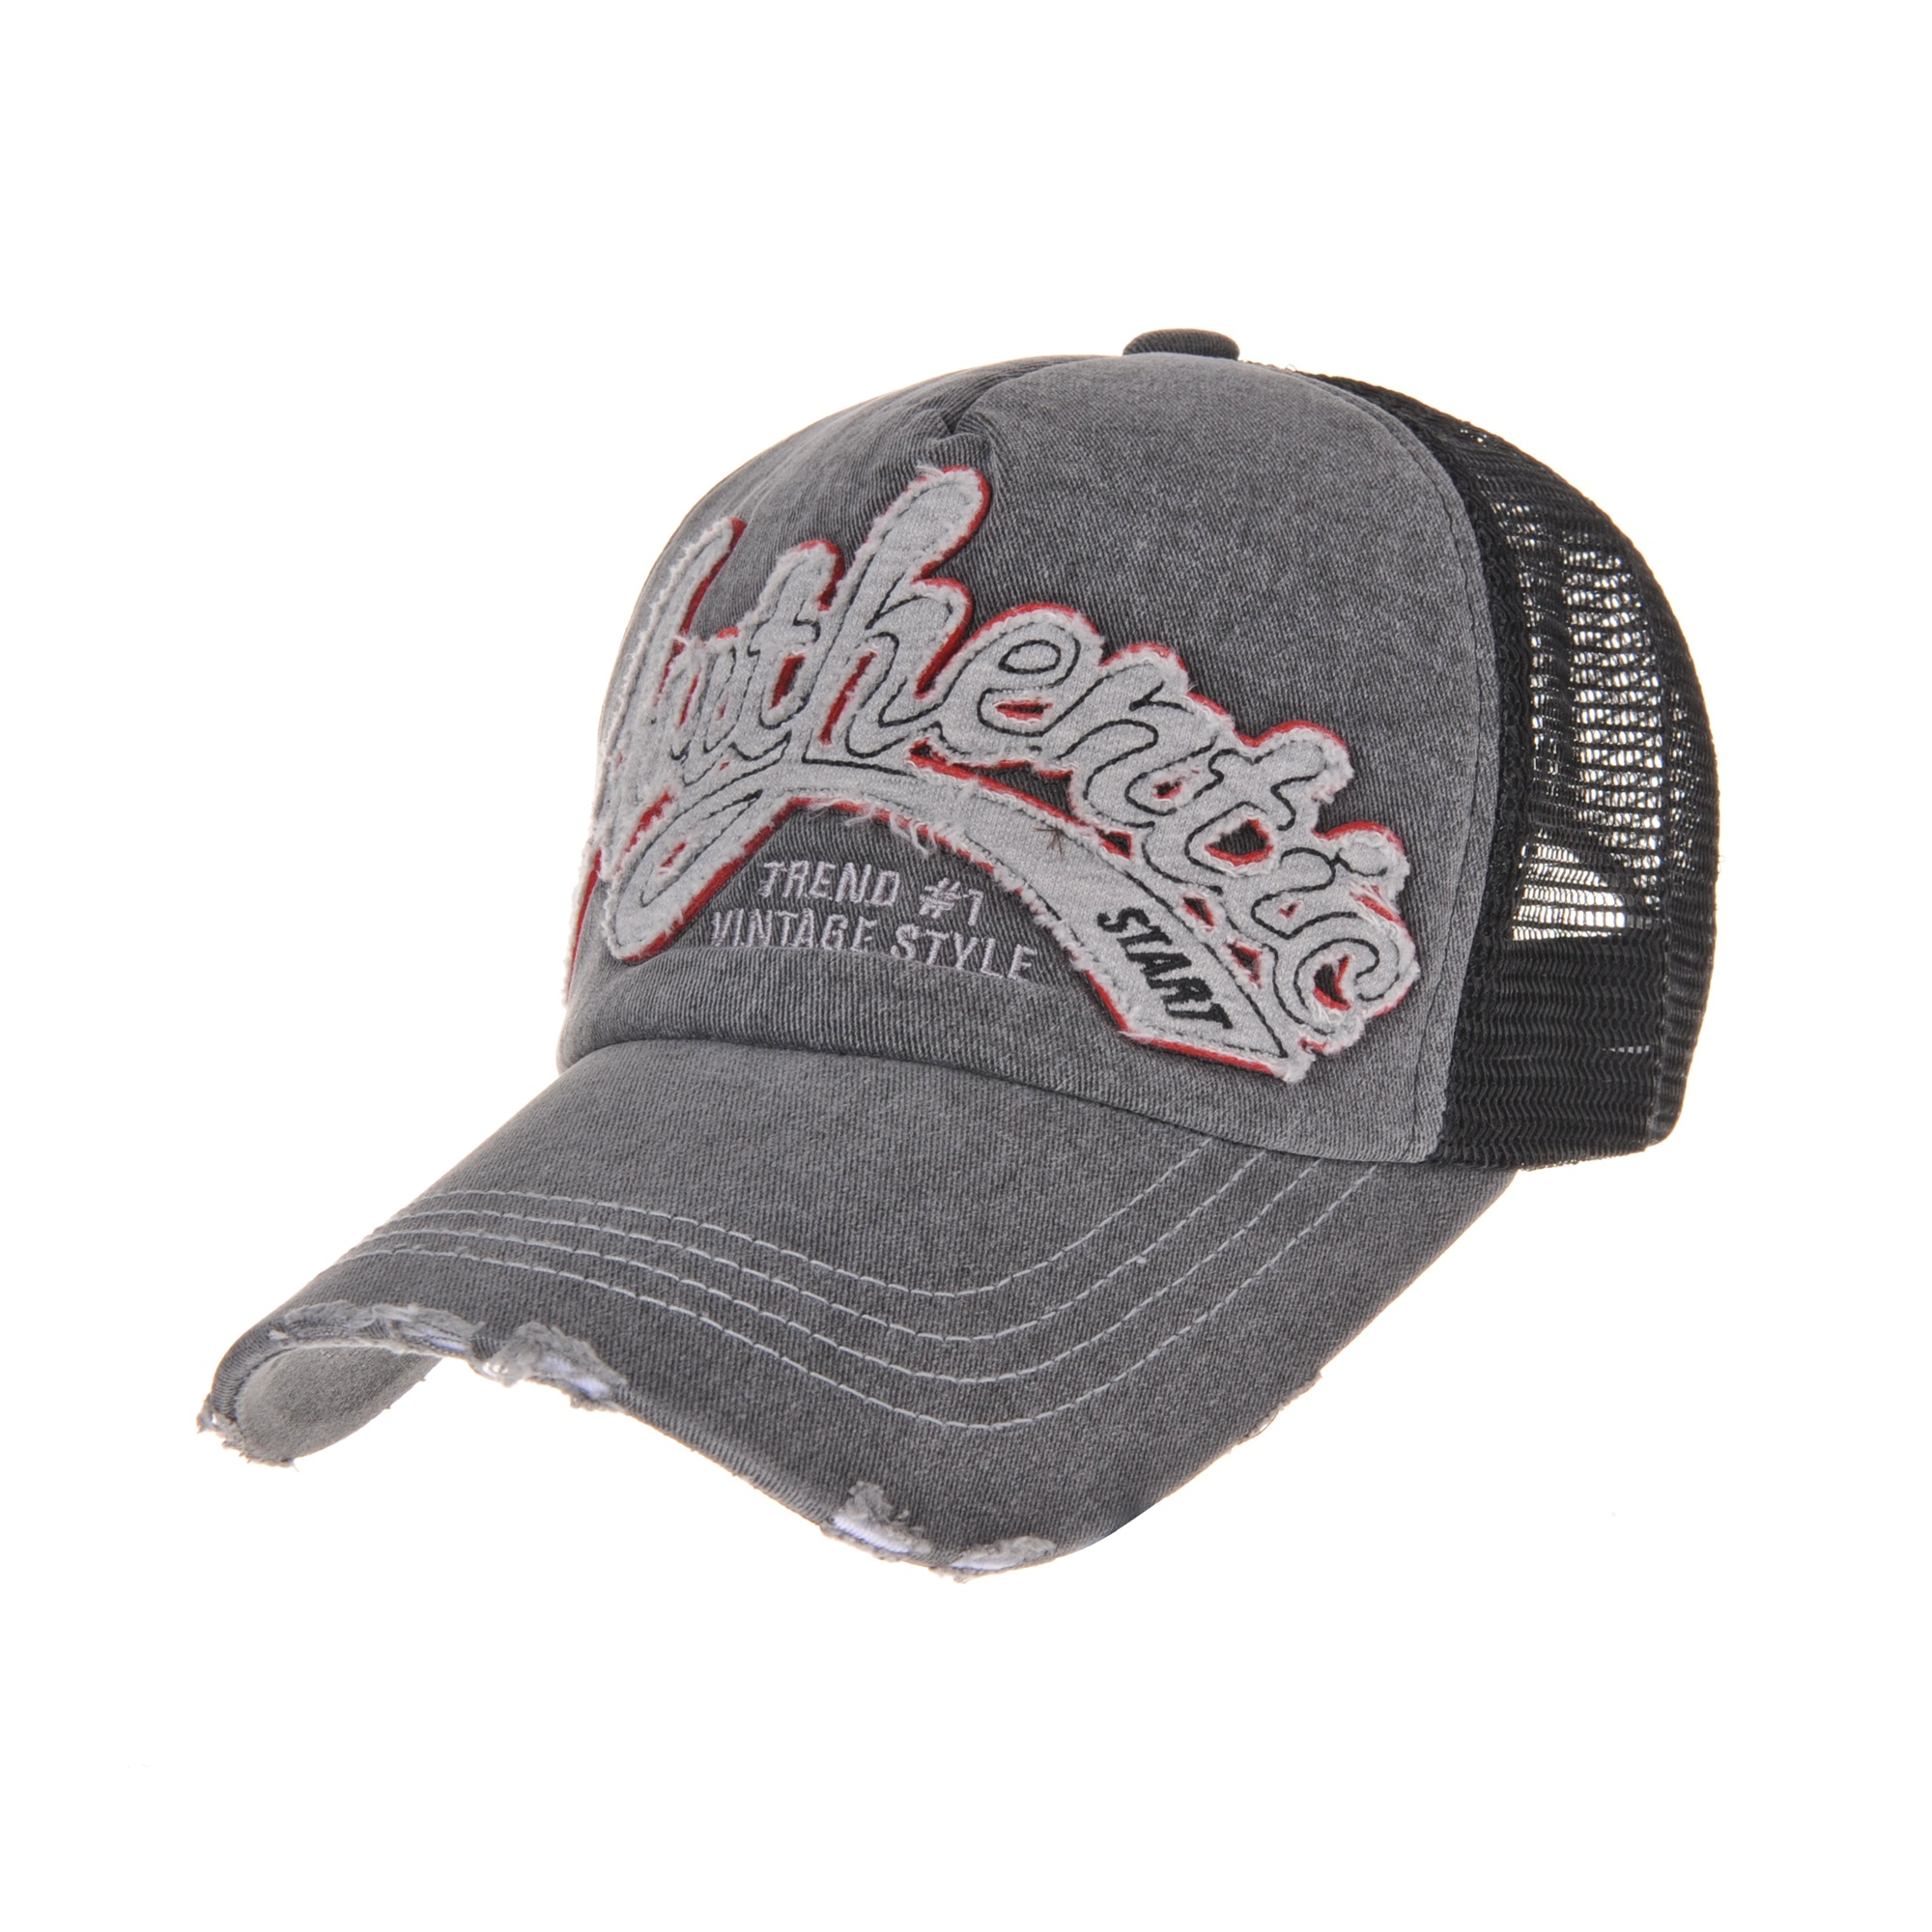 Casquette  usee vieillie Howel/'s Cap 5 Colors Distressed Meshed Trucker cap